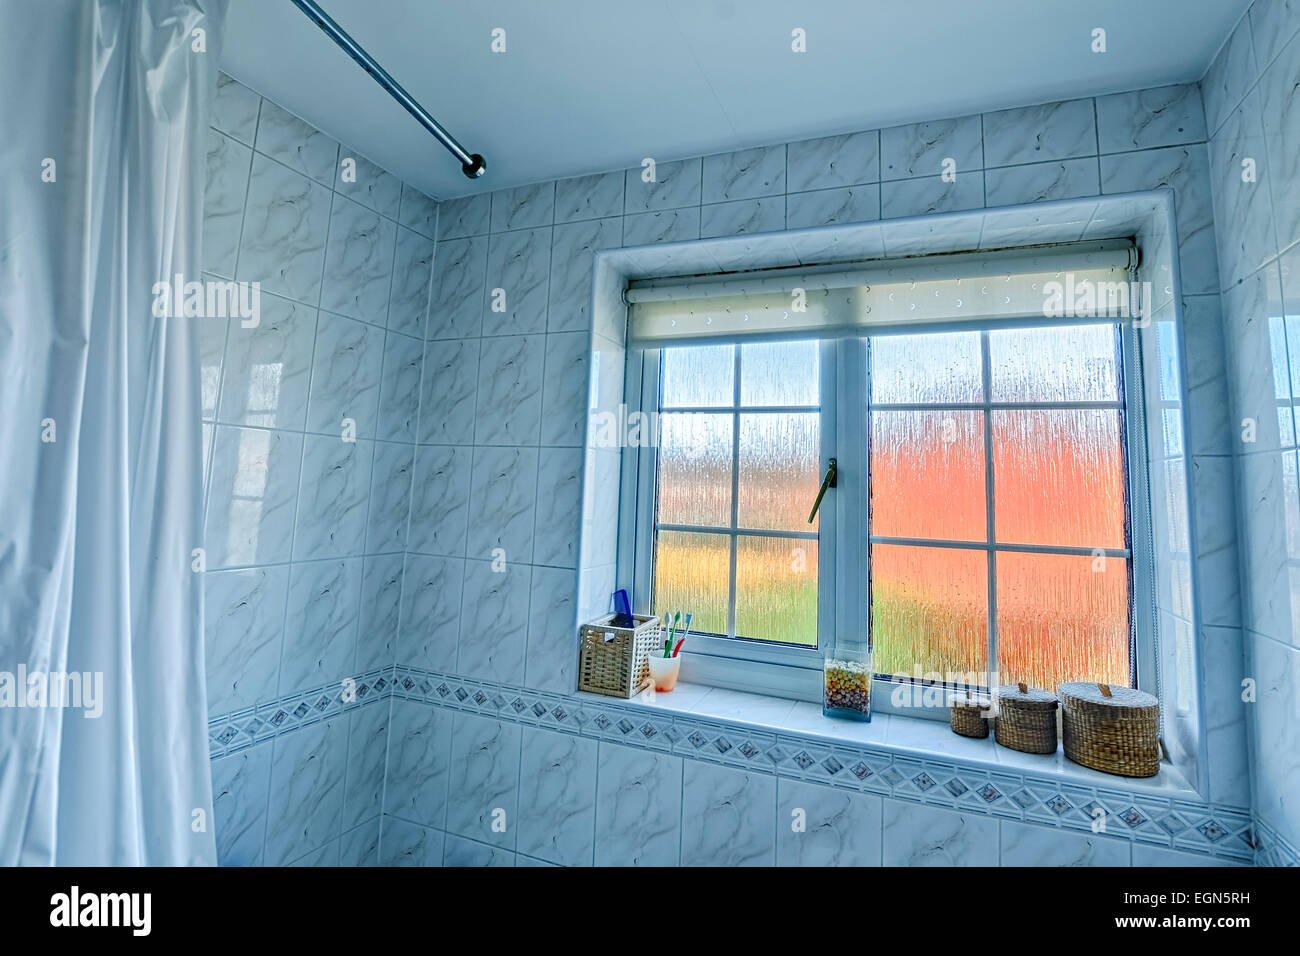 Frosted Glass Window Stock Photos & Frosted Glass Window Stock ...